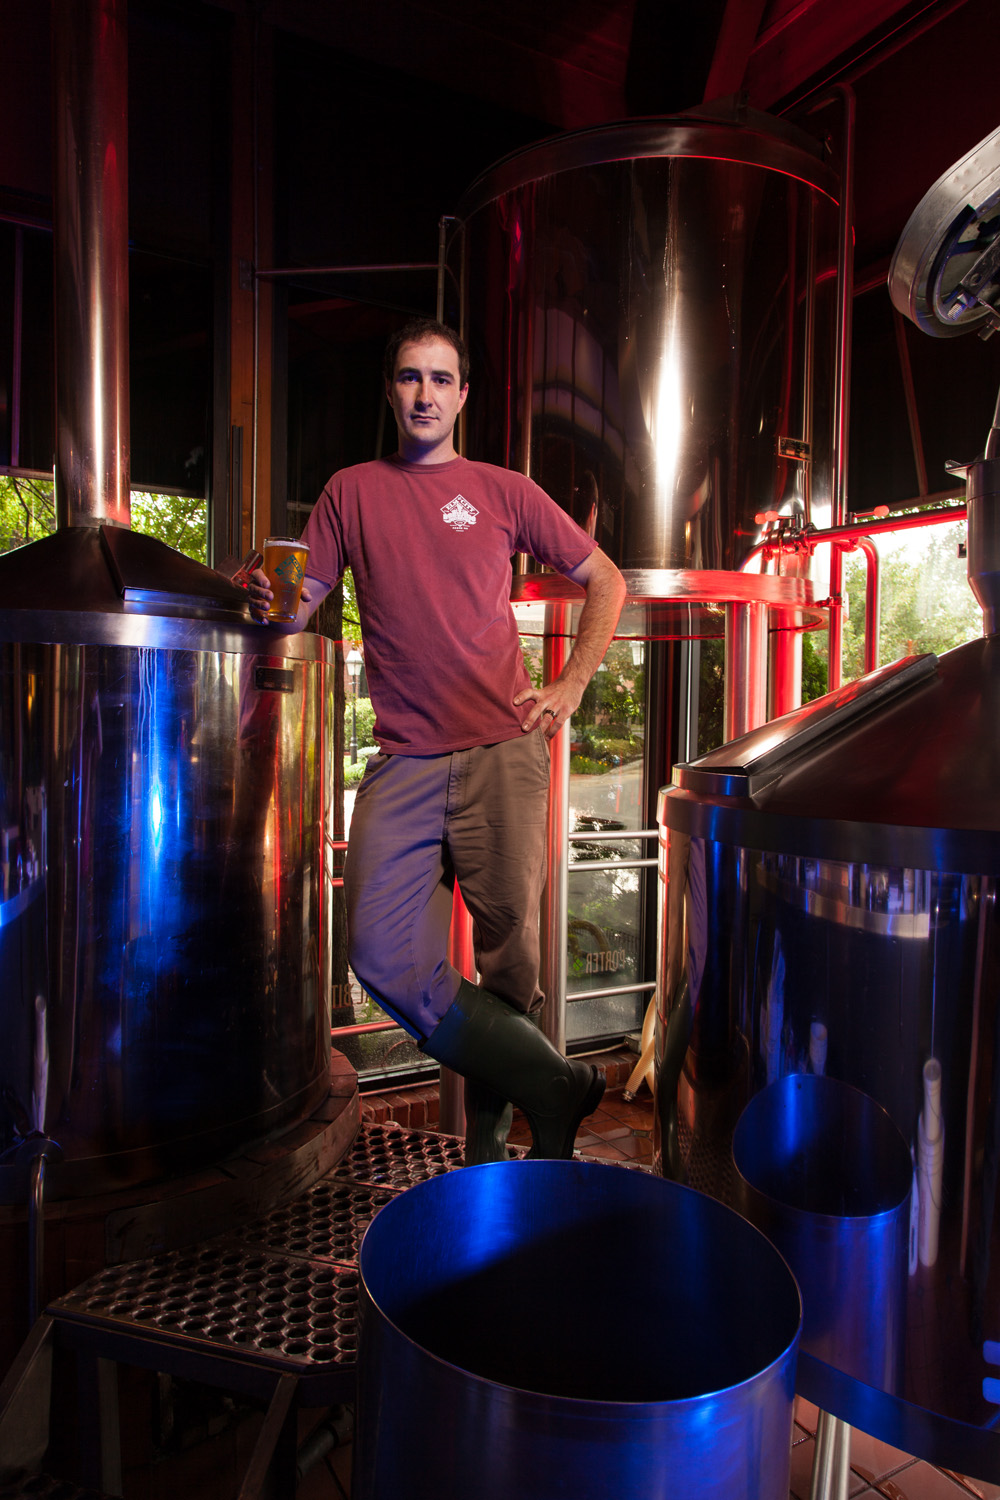 Ben Mullett, Head Brewer Elm City Brewing Co. Keene, NH Established in 1994